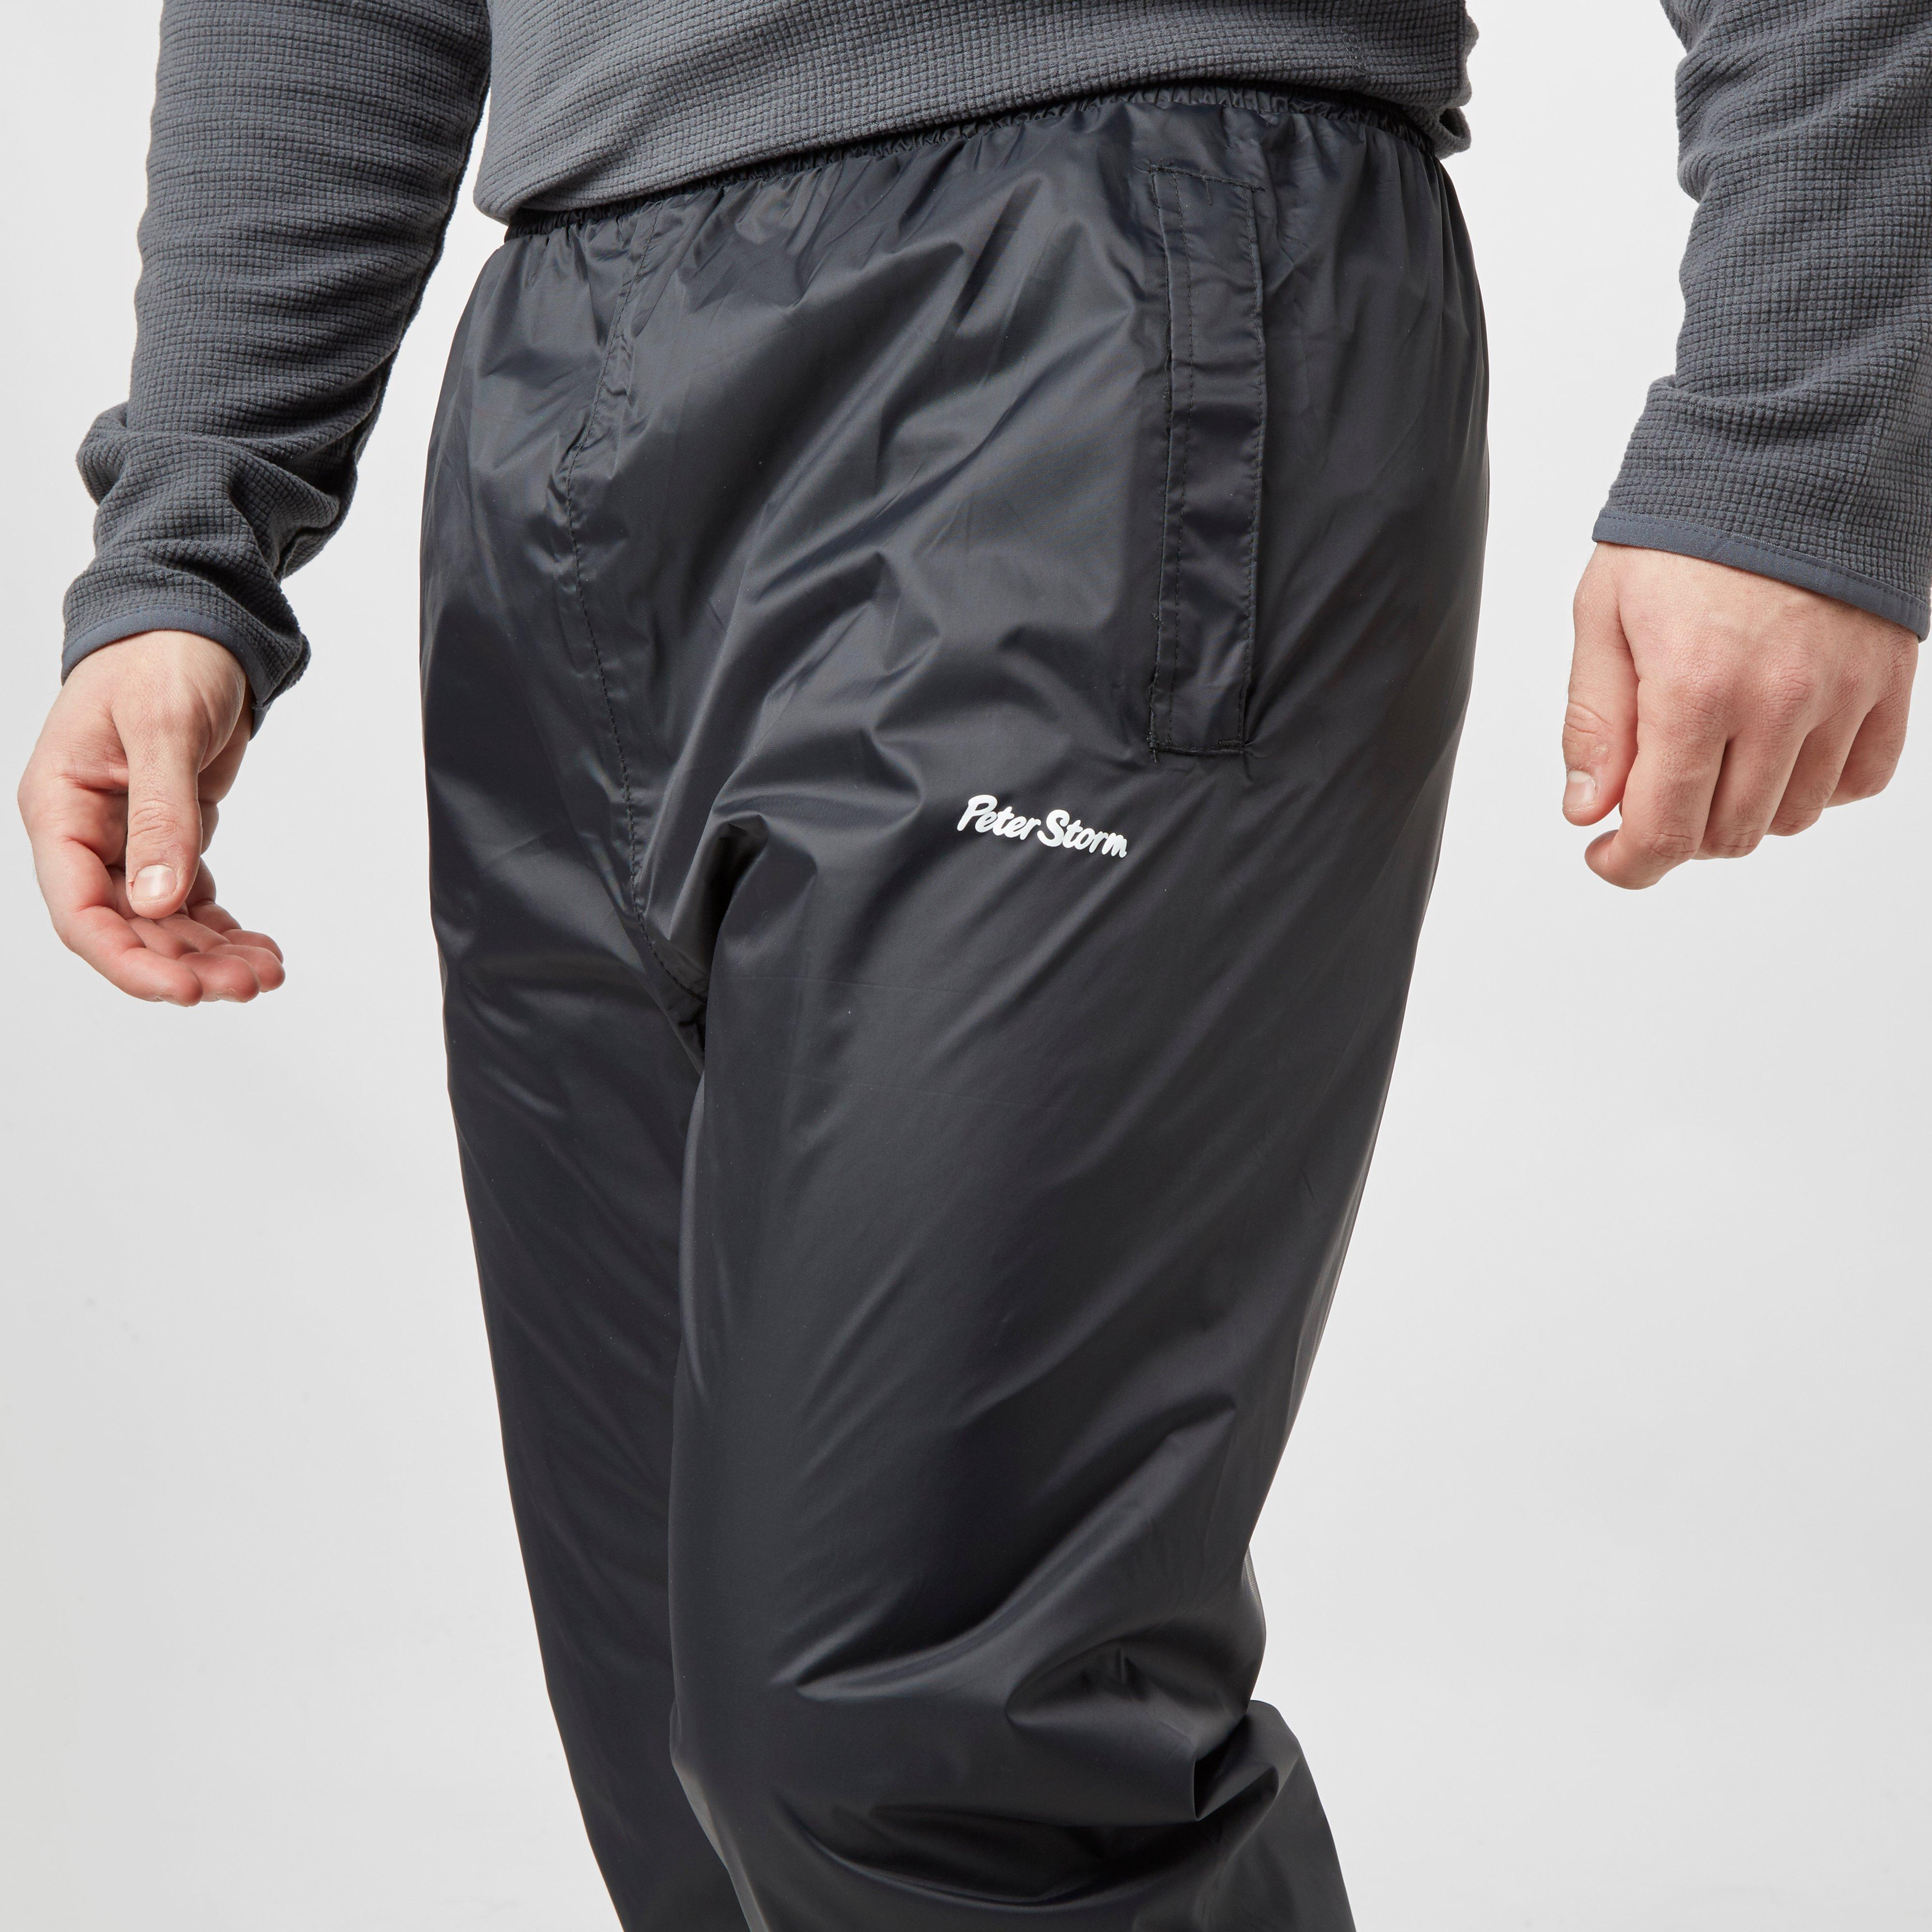 Peter Storm Mens Packable Backpacking Hiking Pants